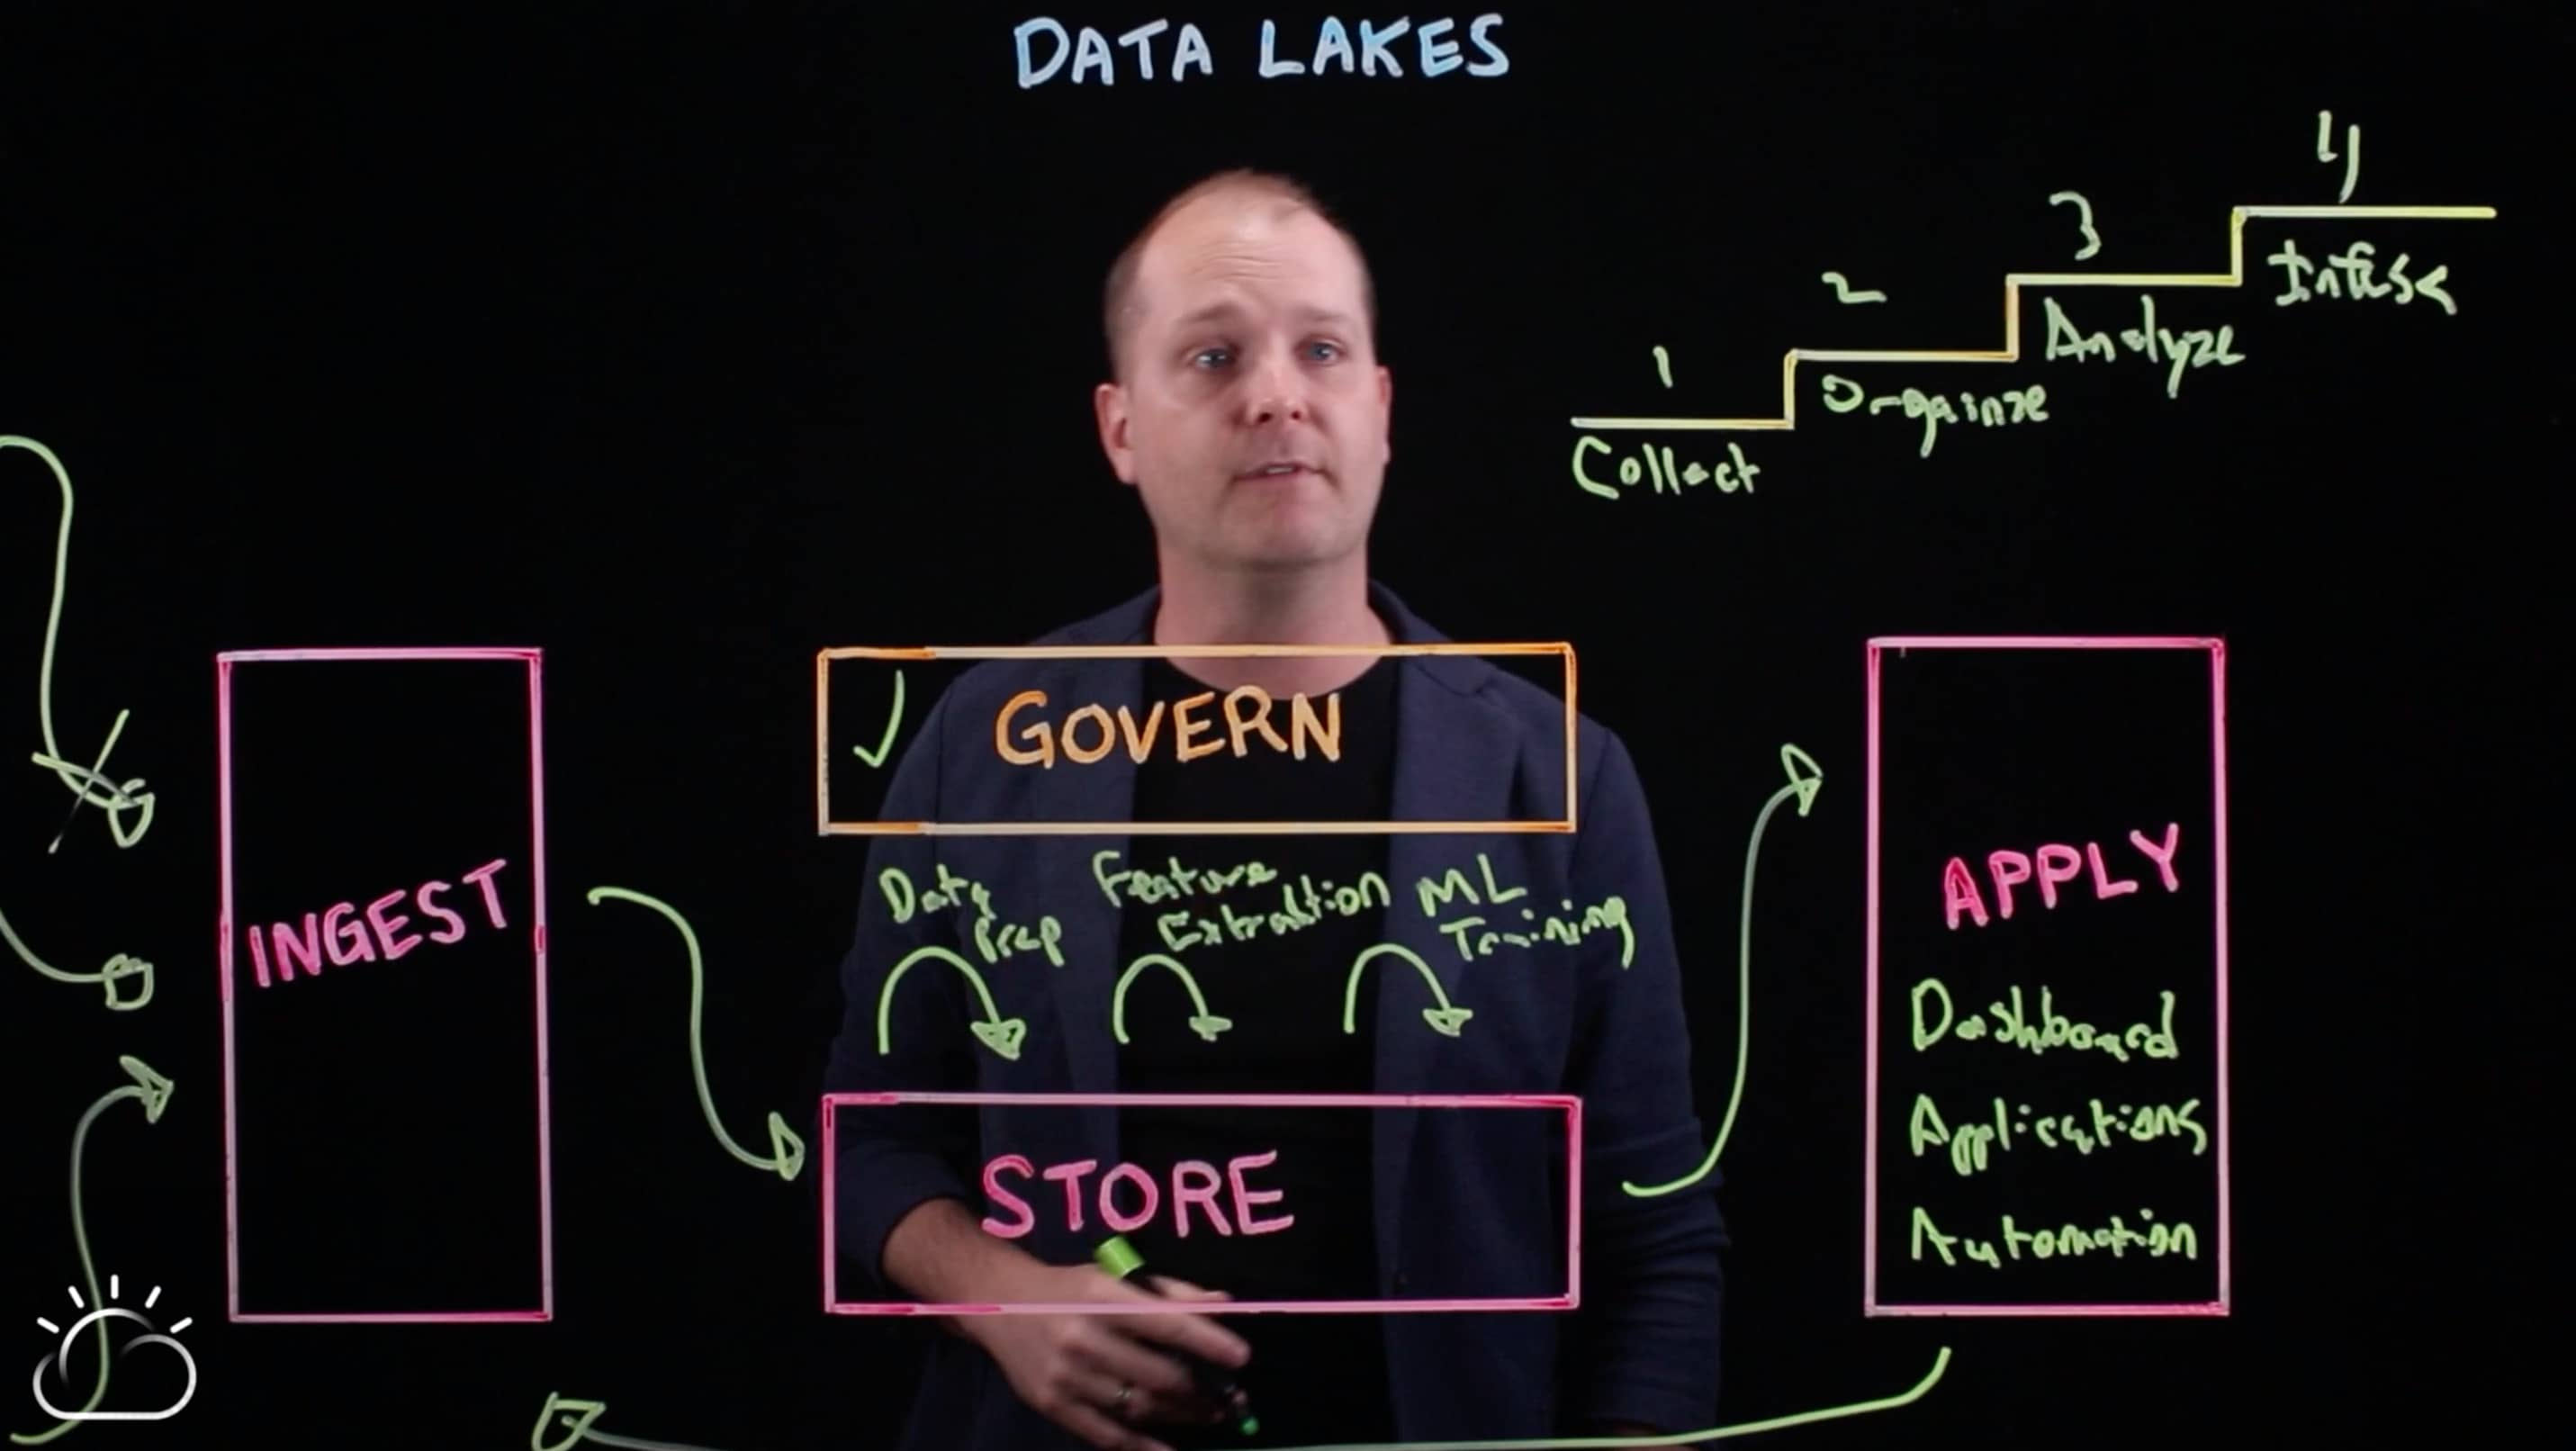 Data lakes and the AI ladder